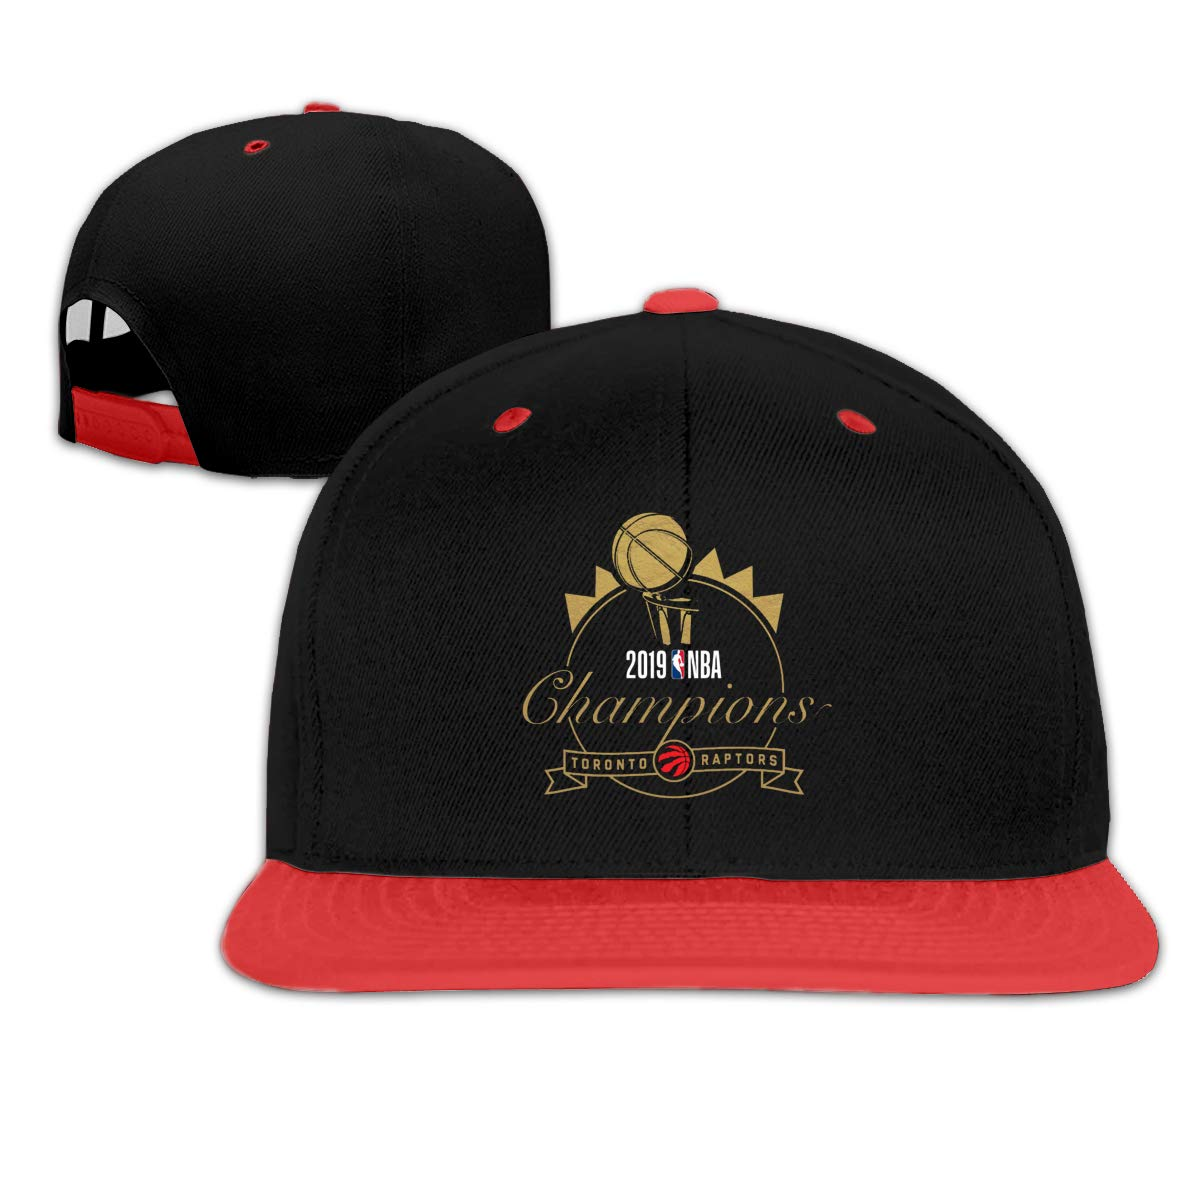 DRE2584WWF 2019 Toronto Raptors Championship Boys and Girls Hip-Hop Baseball Cap Adjustable Cap